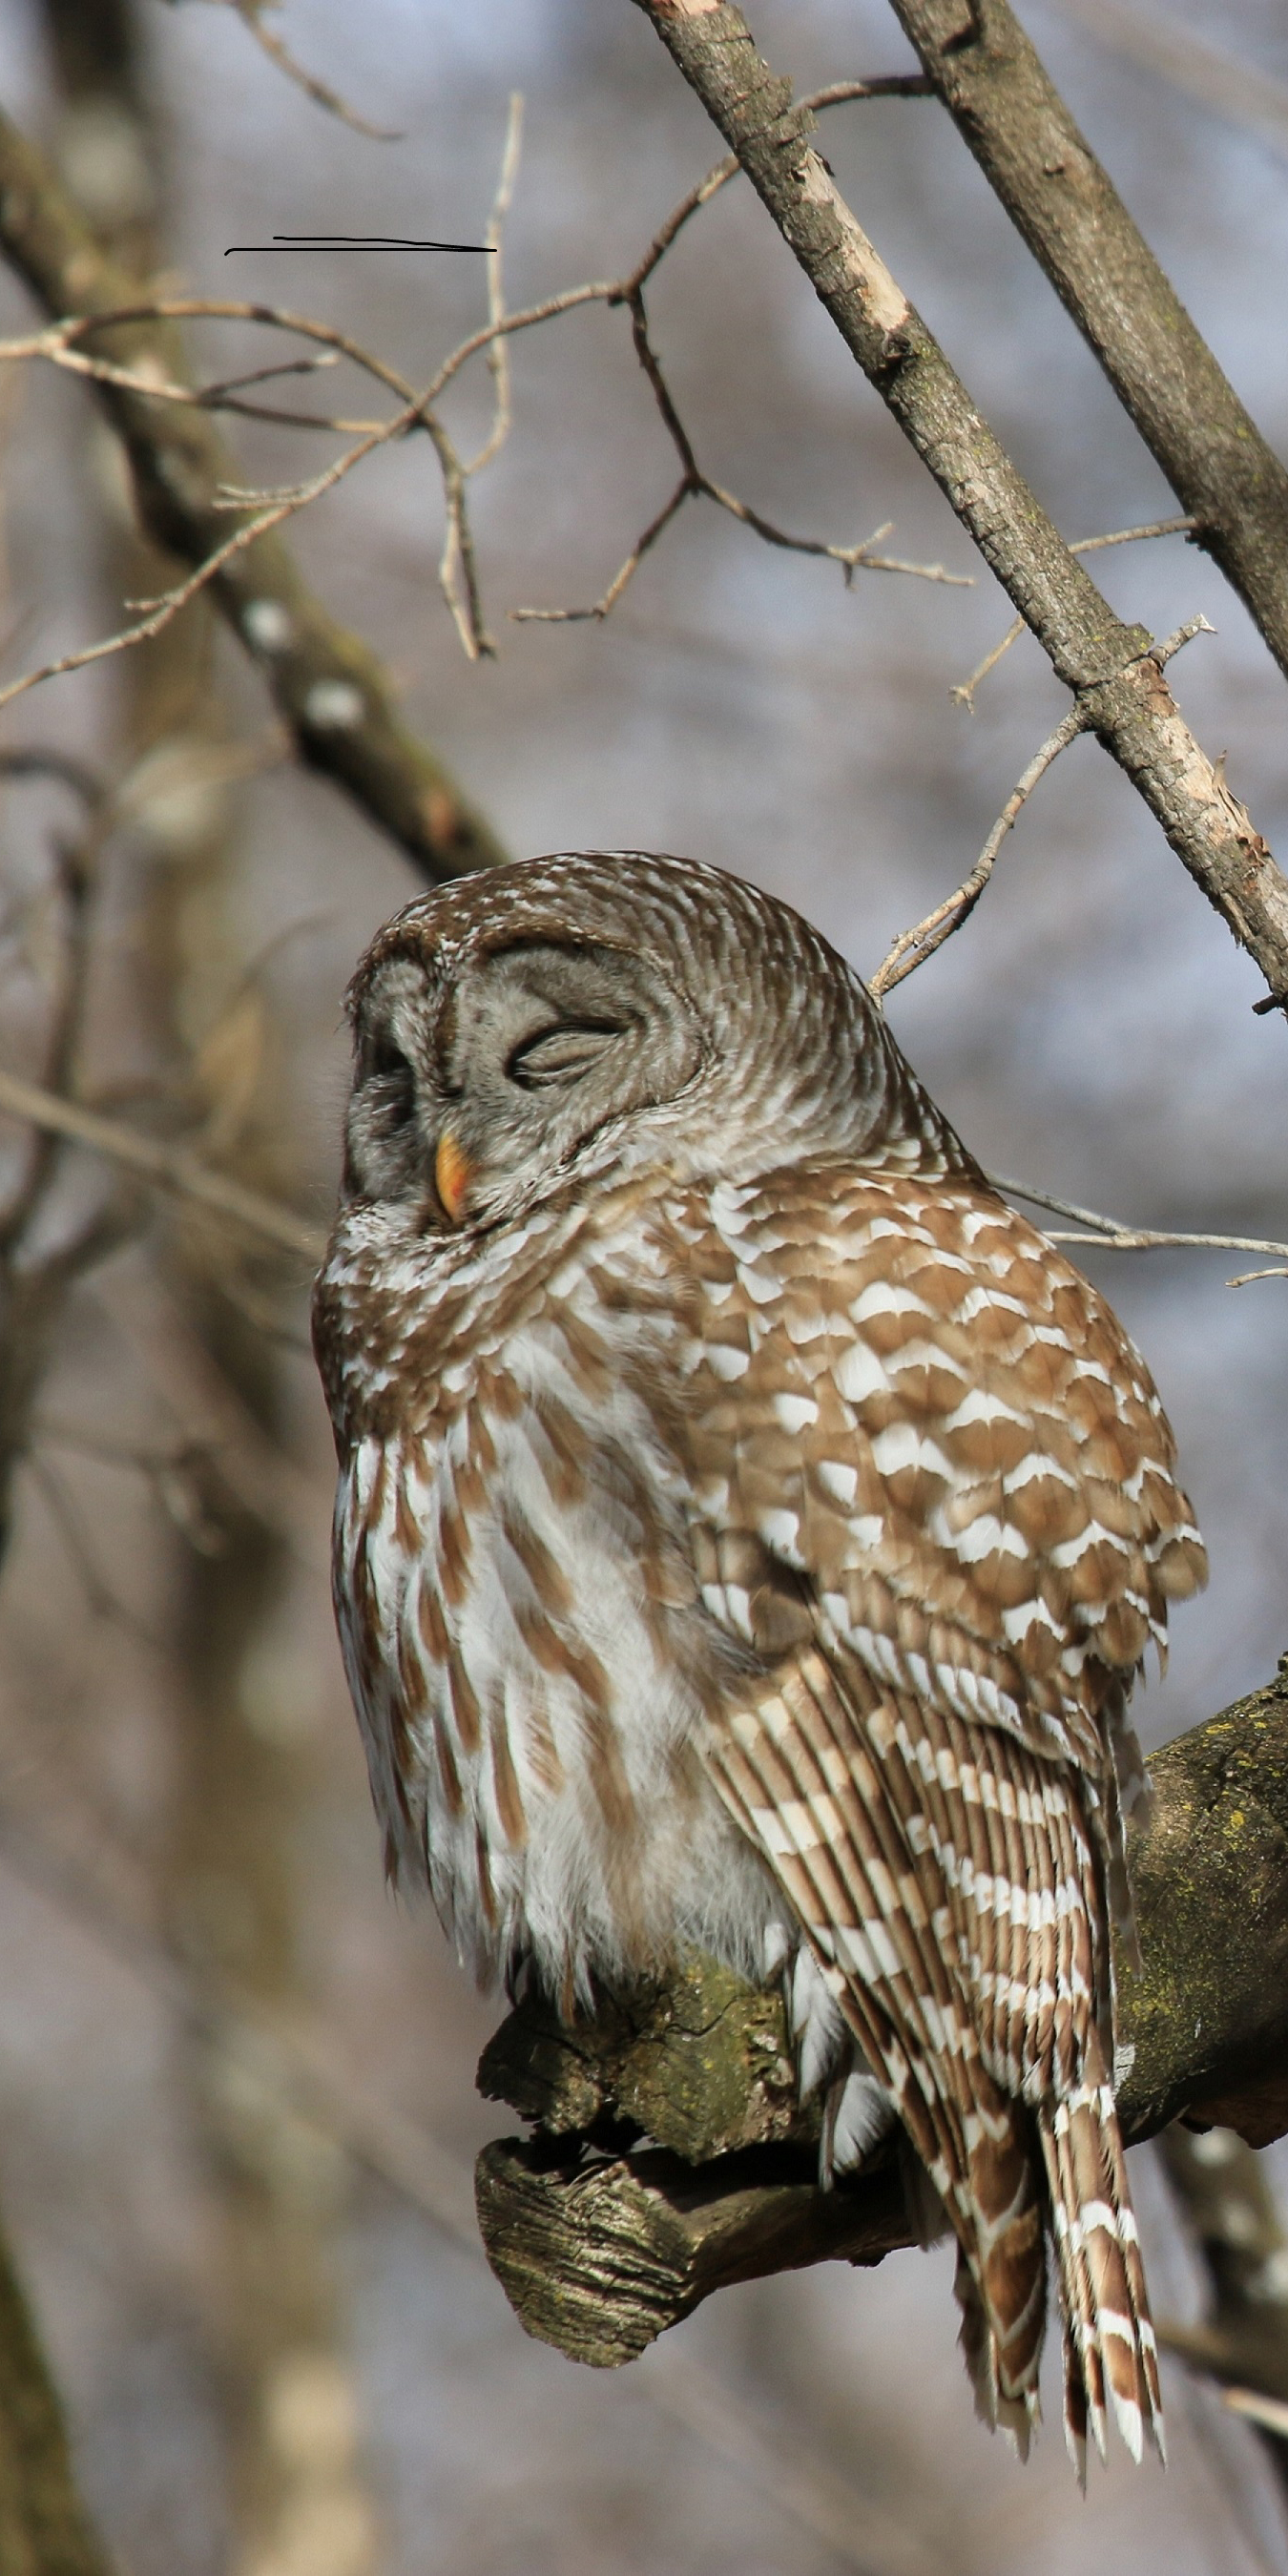 Barred Owl with closed eyes on tree limb